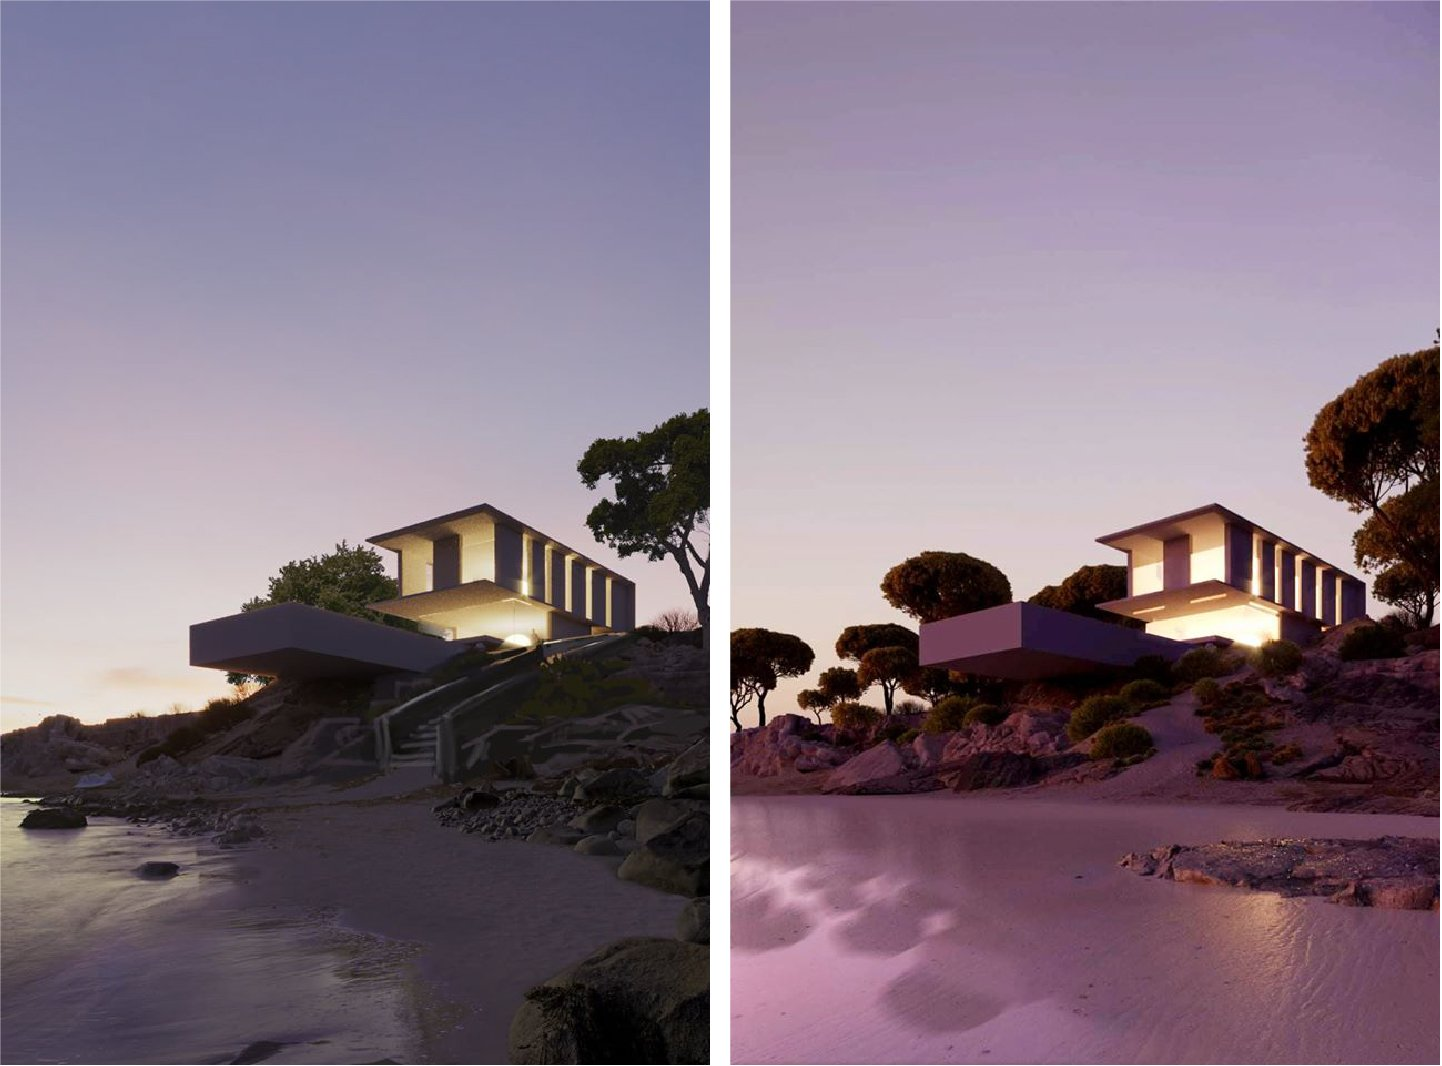 Exterior 3D Visualization for a Second Concept of the CGI Project